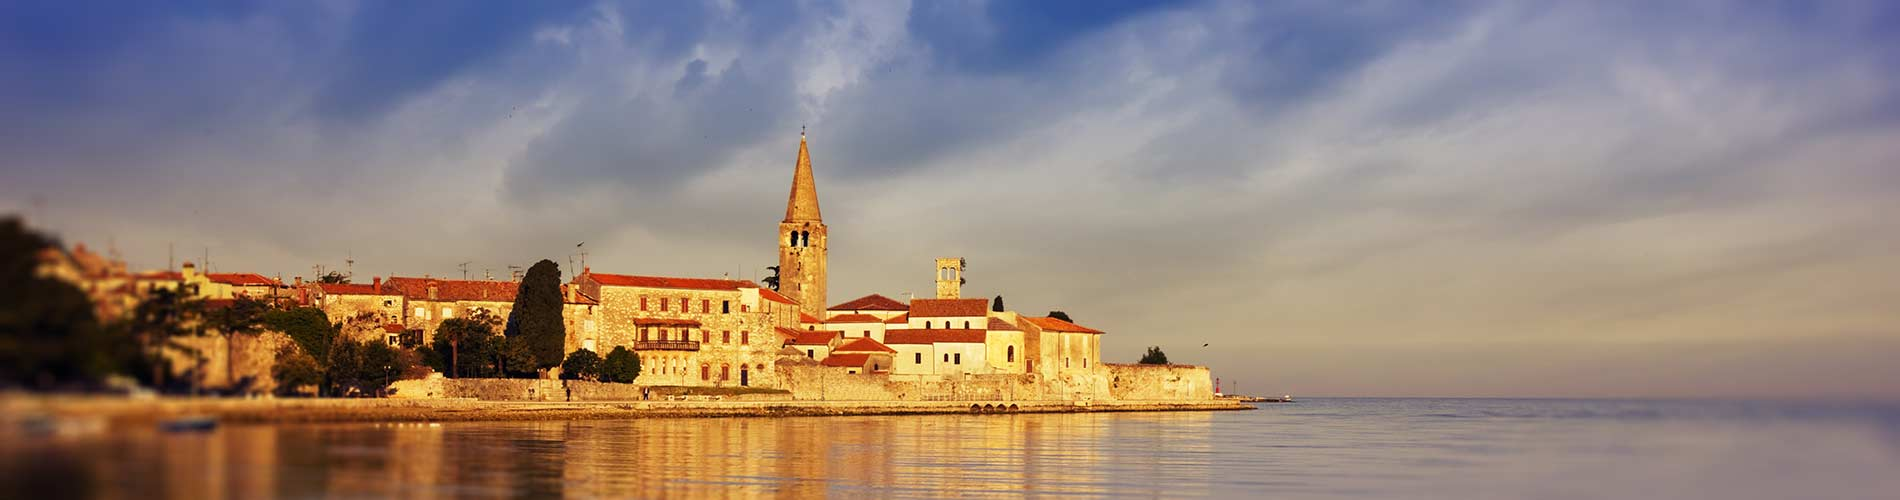 view of Porec Croatia.jpg